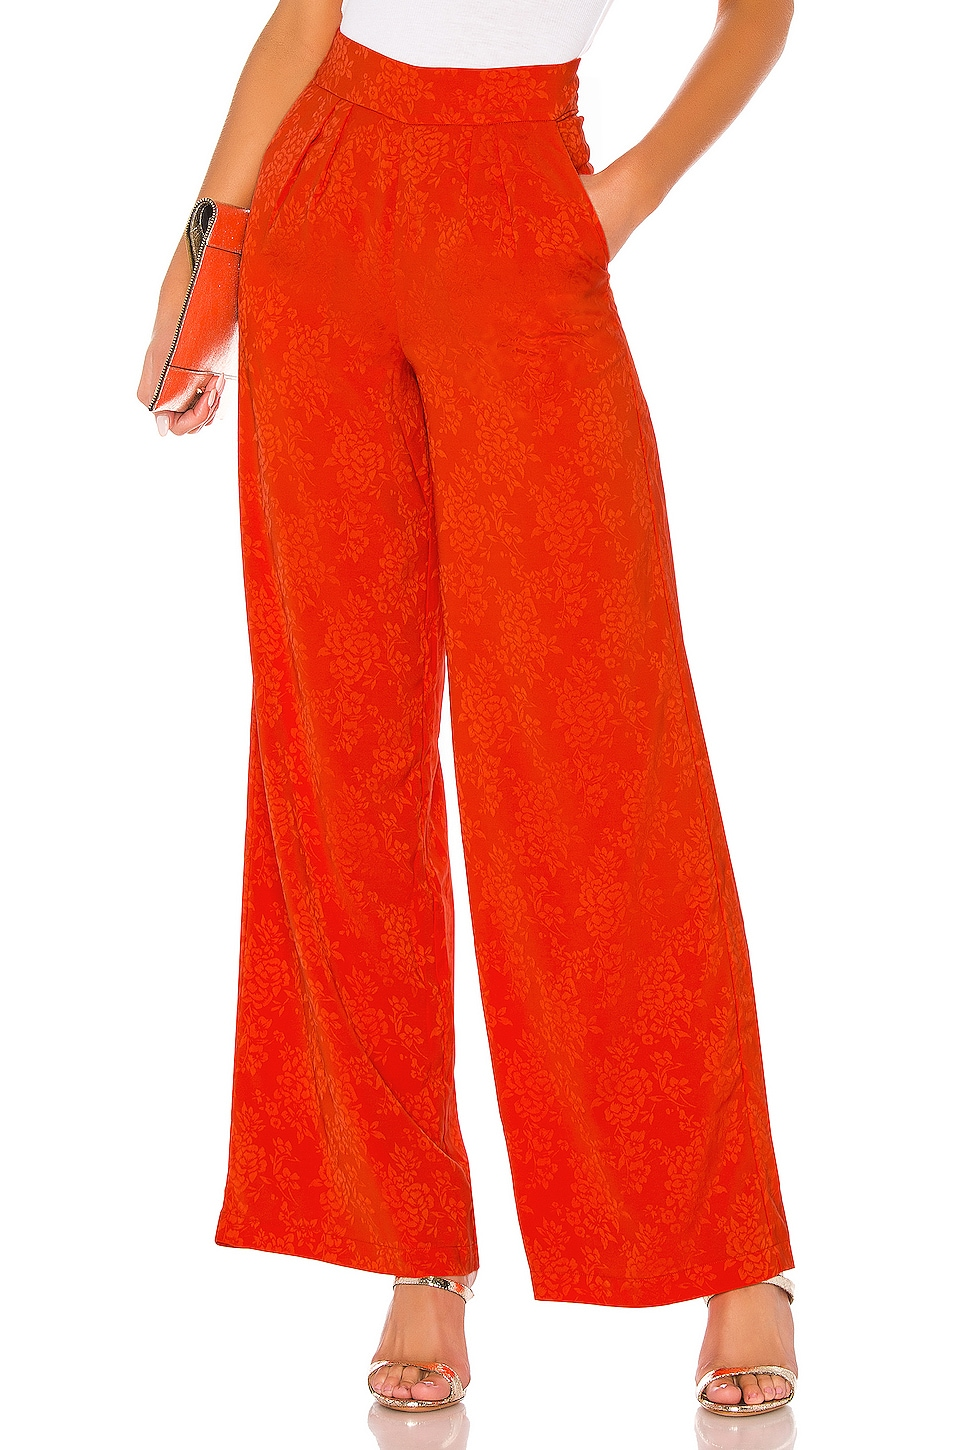 House of Harlow 1960 X REVOLVE Charlie Wide Leg Pants in Orange